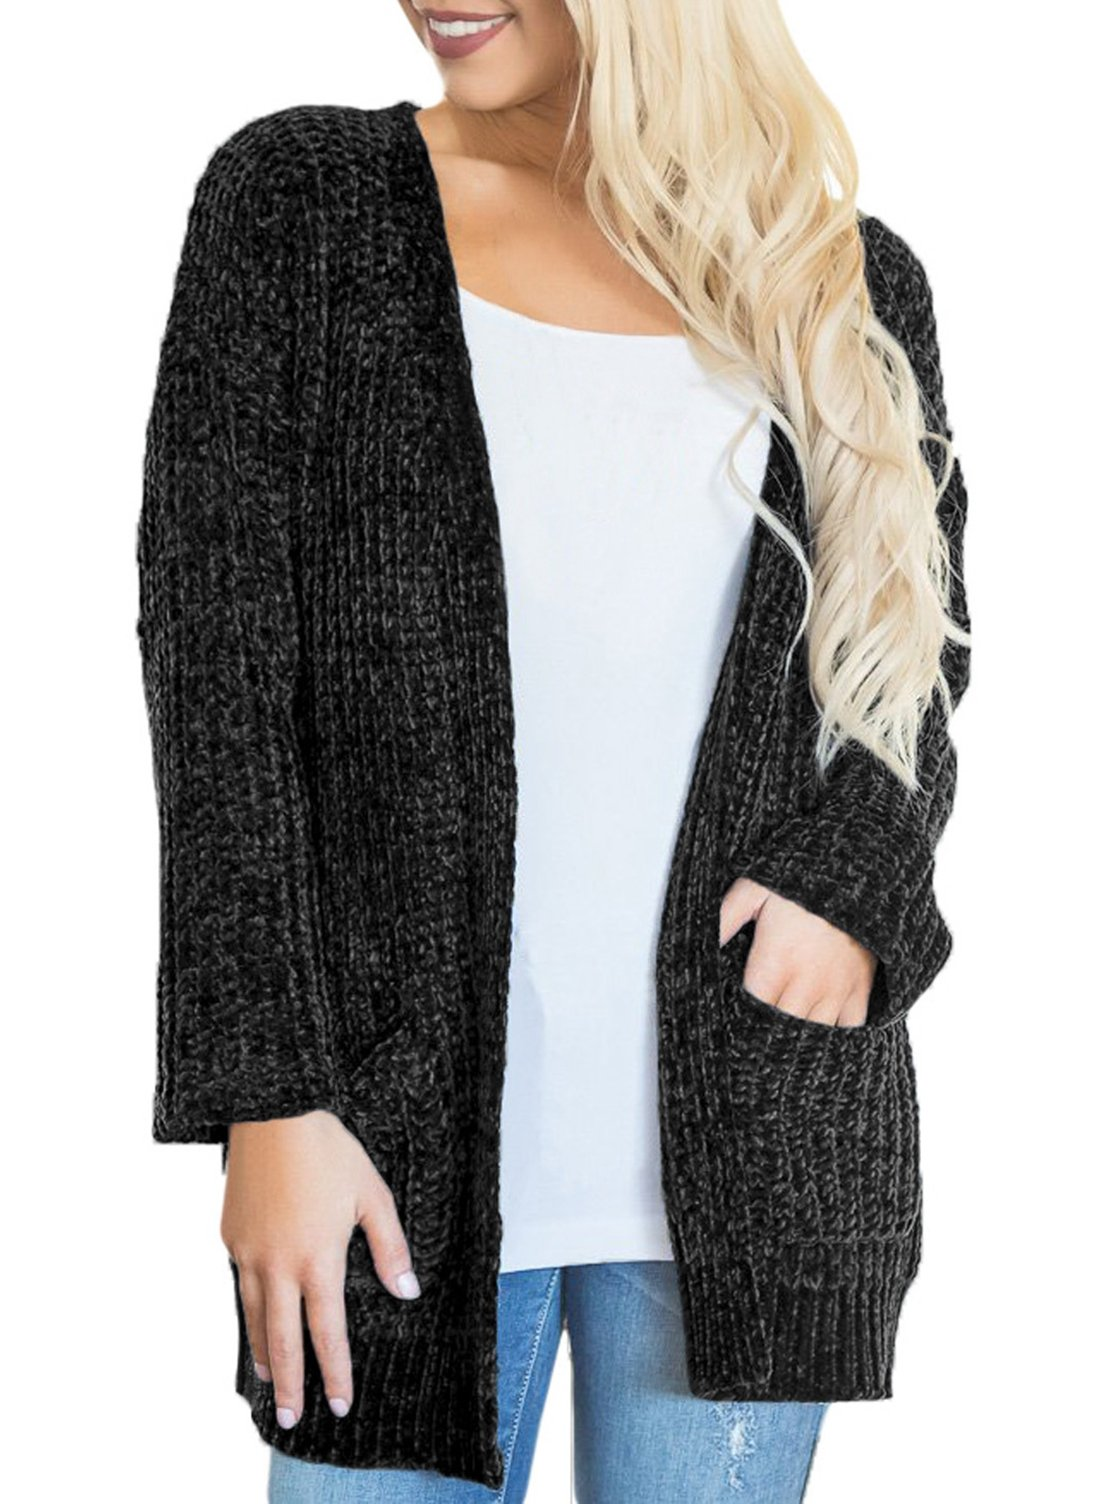 Women's Casual Long Sleeve Open Front Knitted Cardigans Loose Sweaters Oversized Outwear Coat with Pockets Black L 12 14